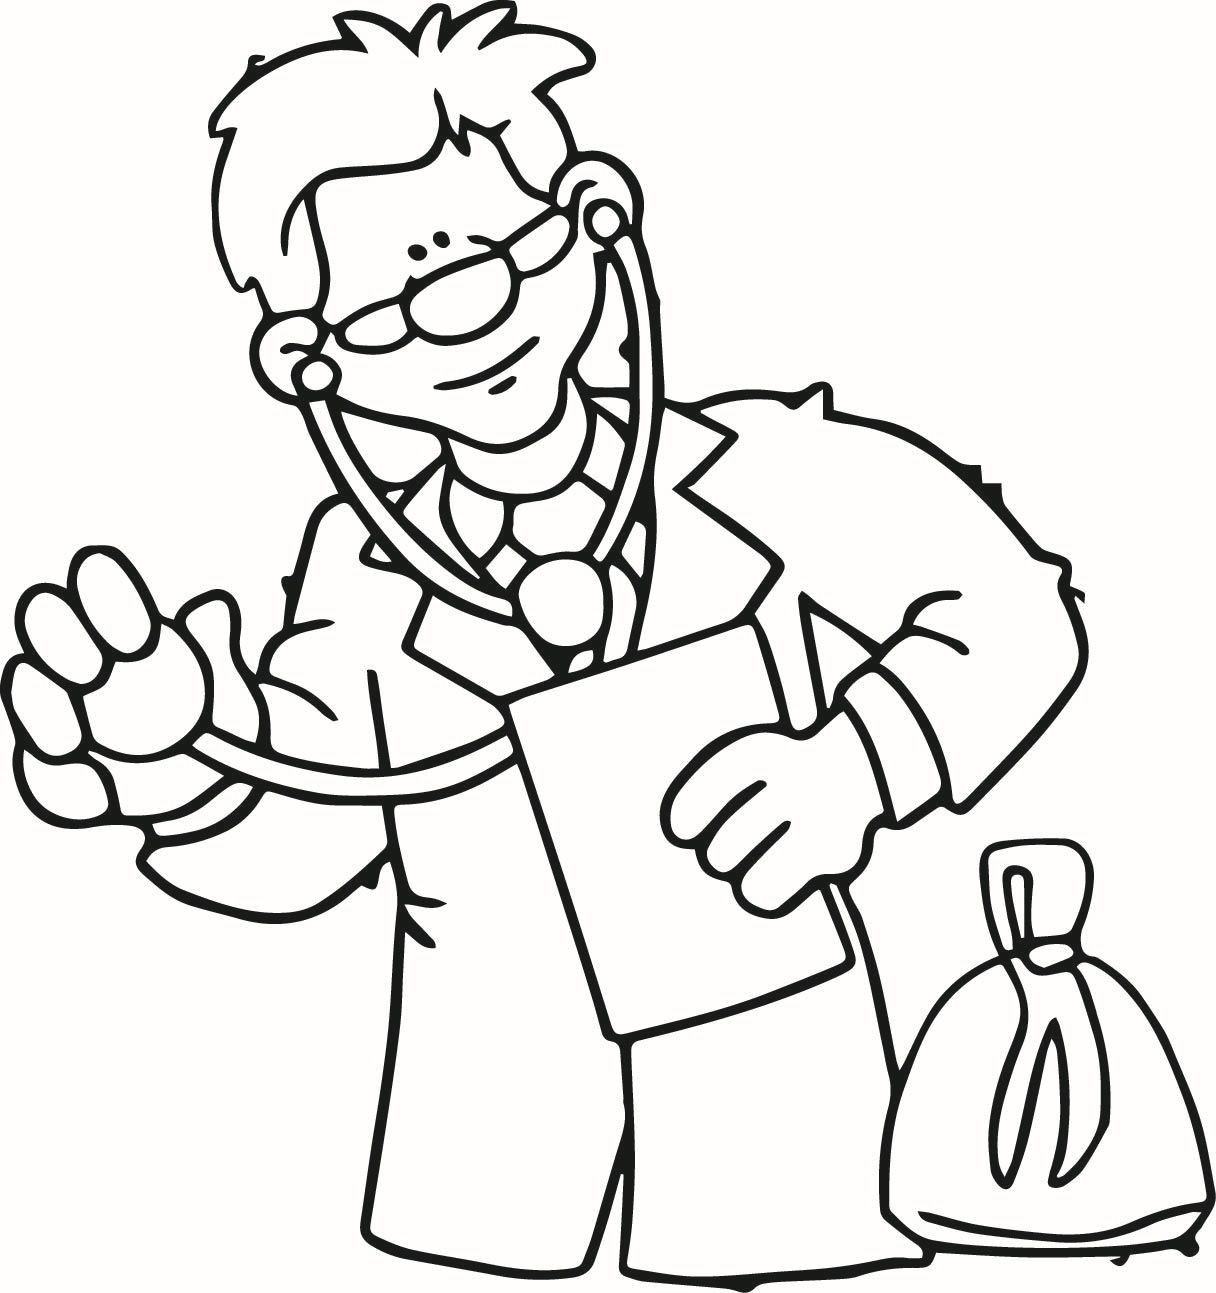 Doctor Coloring Pages  Doctor Coloring Pages For Kids Coloring Home